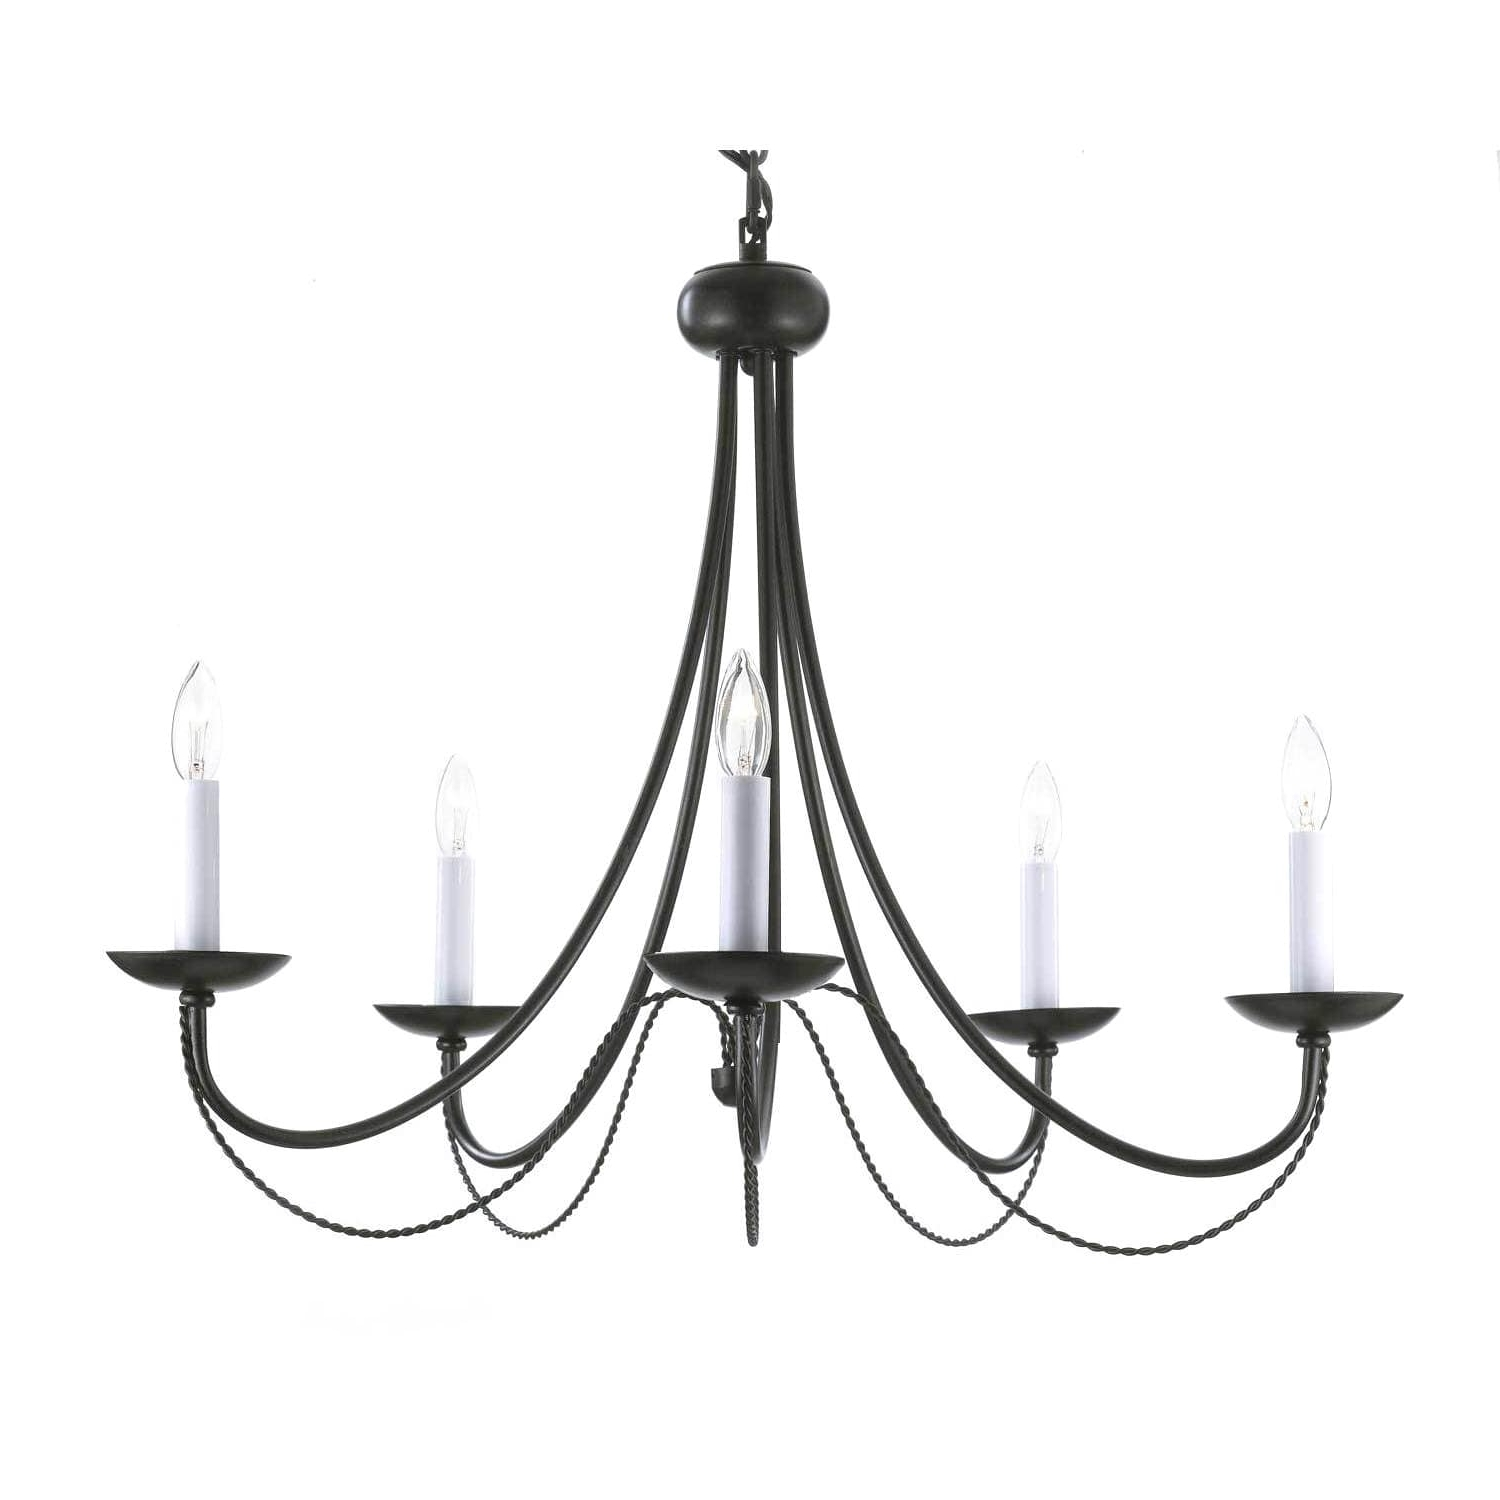 Iron Chandelier Intended For Most Up To Date Gallery Versailles 5 Light Black Wrought Iron Chandelier – Free (Gallery 16 of 20)